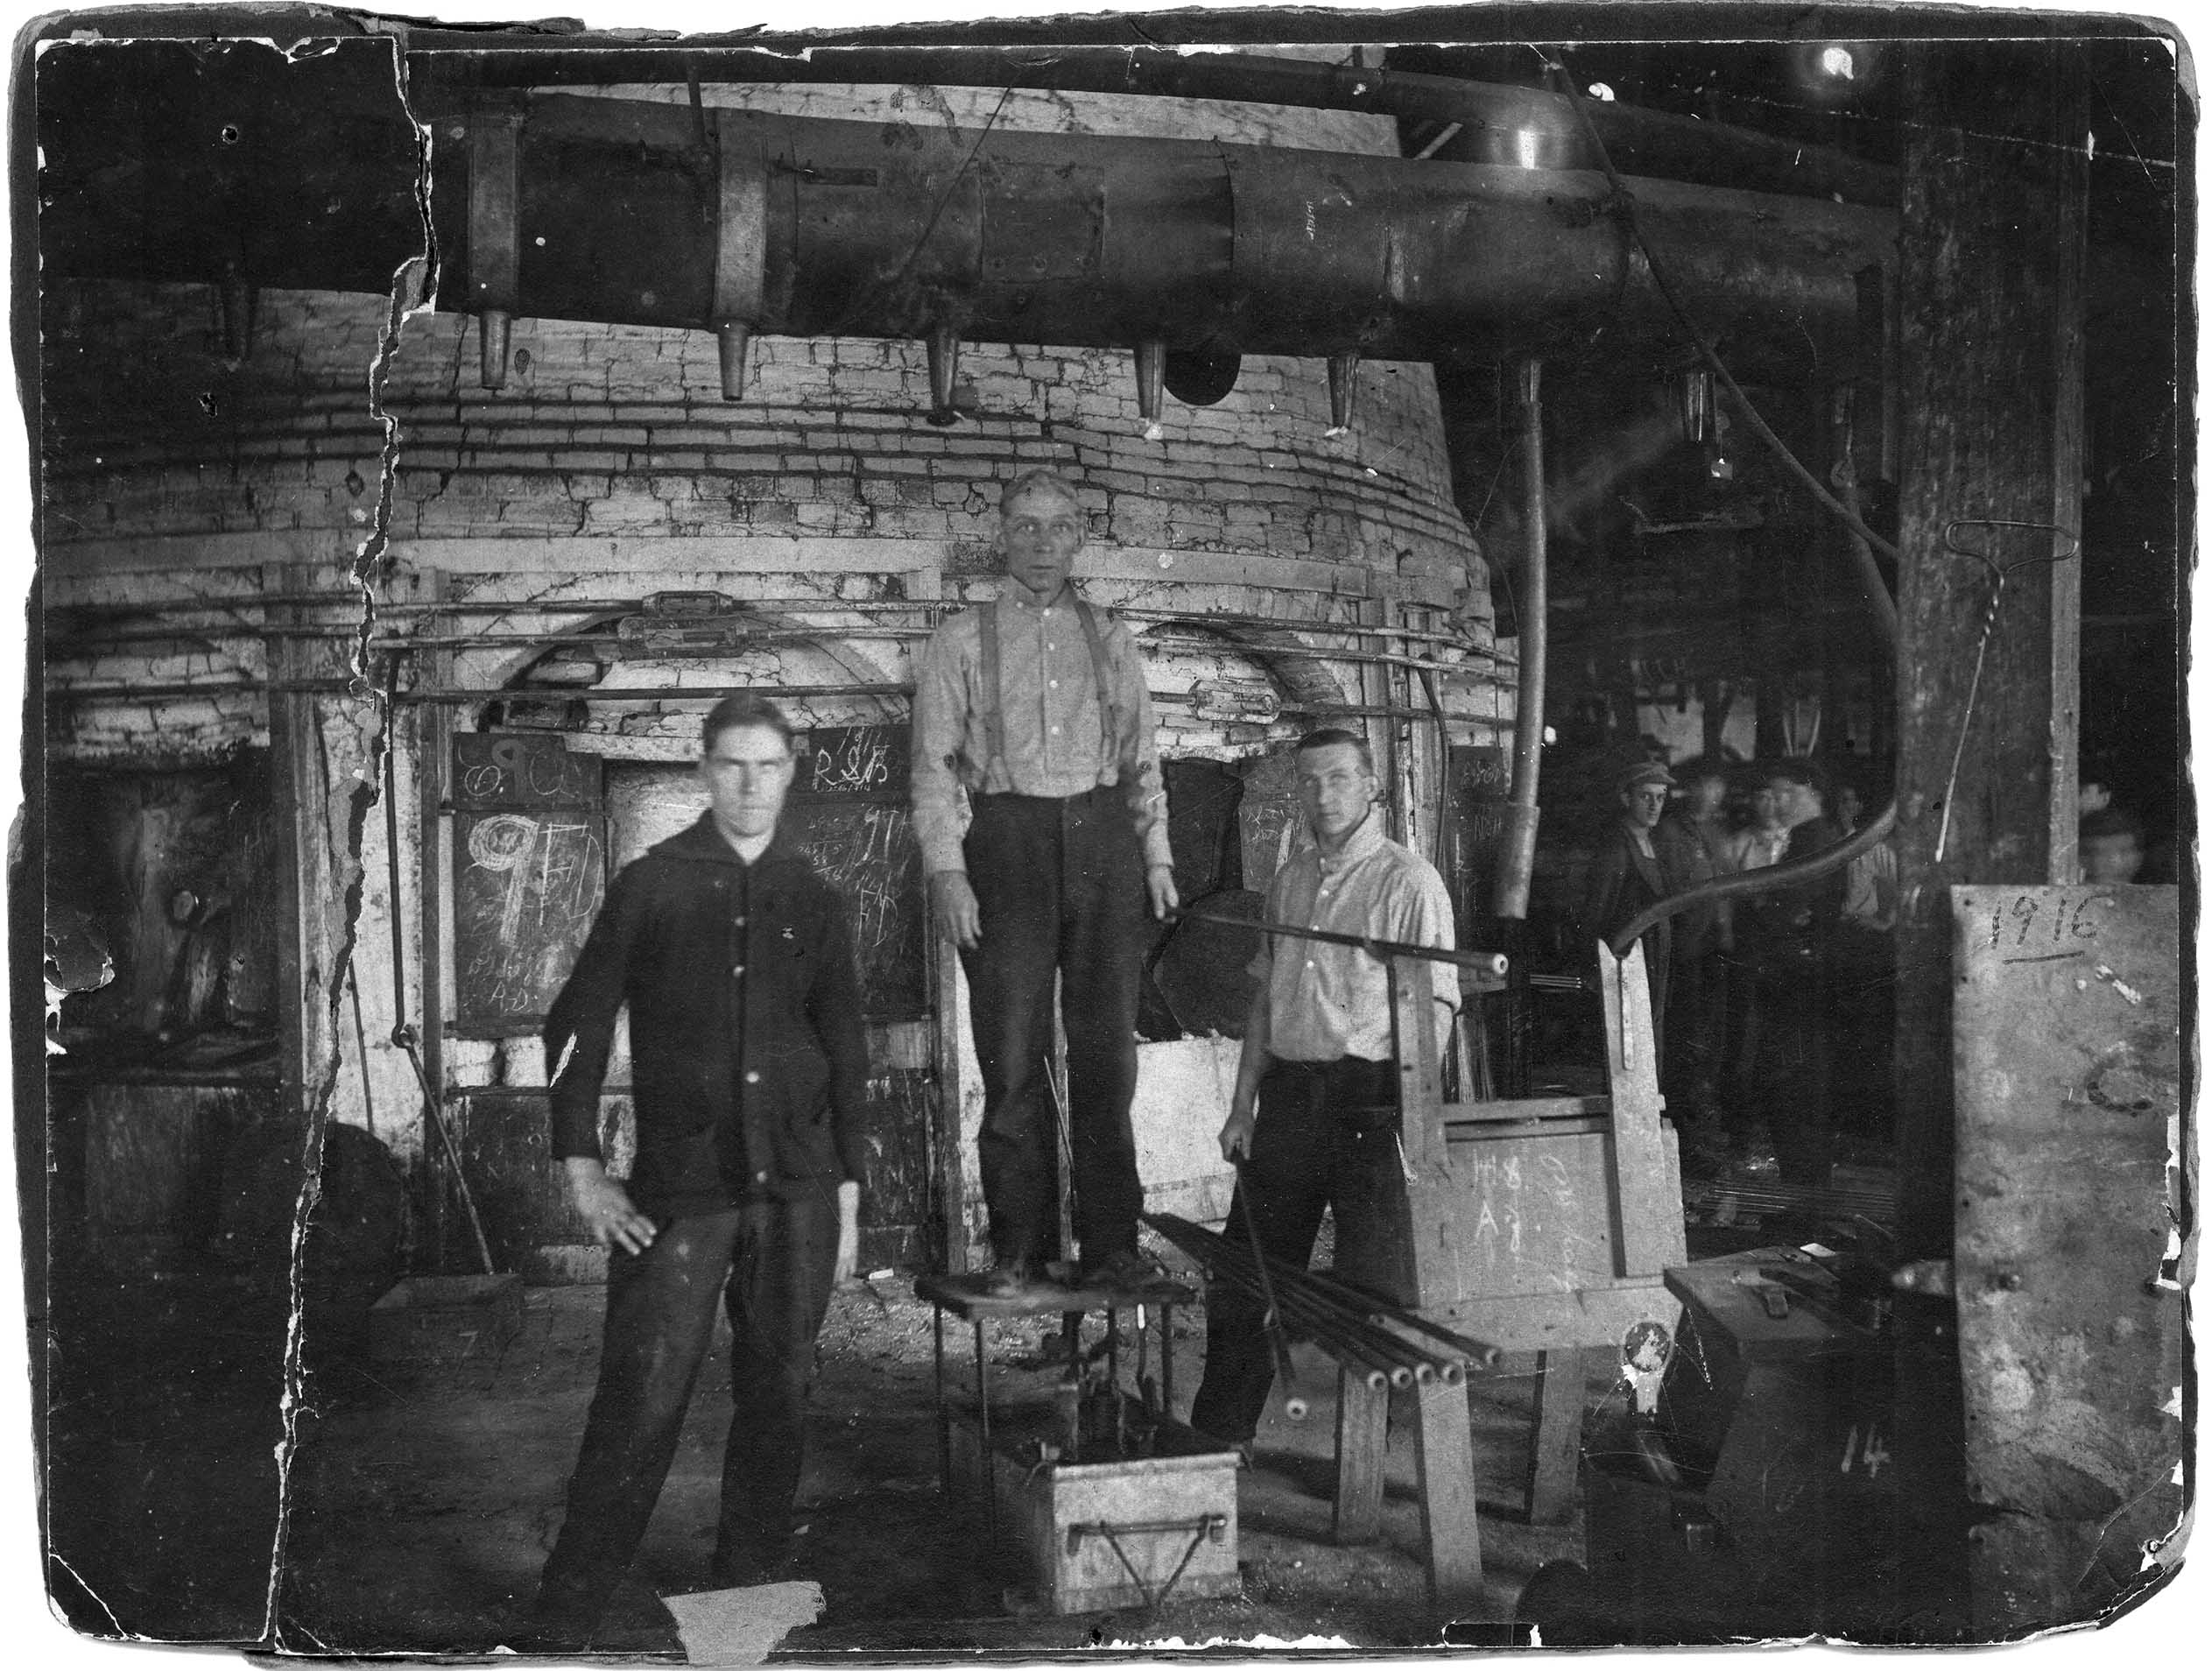 Huntington Tumbler's Furnace room. Image courtesy of Marshall University Special Collections.